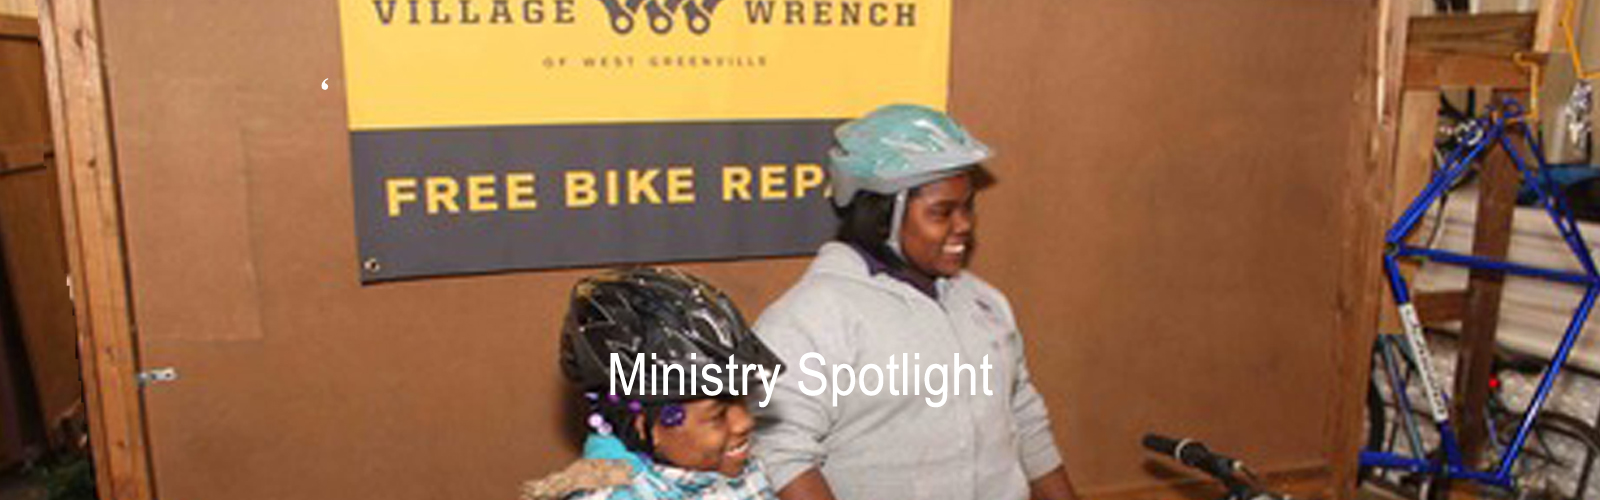 "Ministry Spotlight ""Village Wrench"""